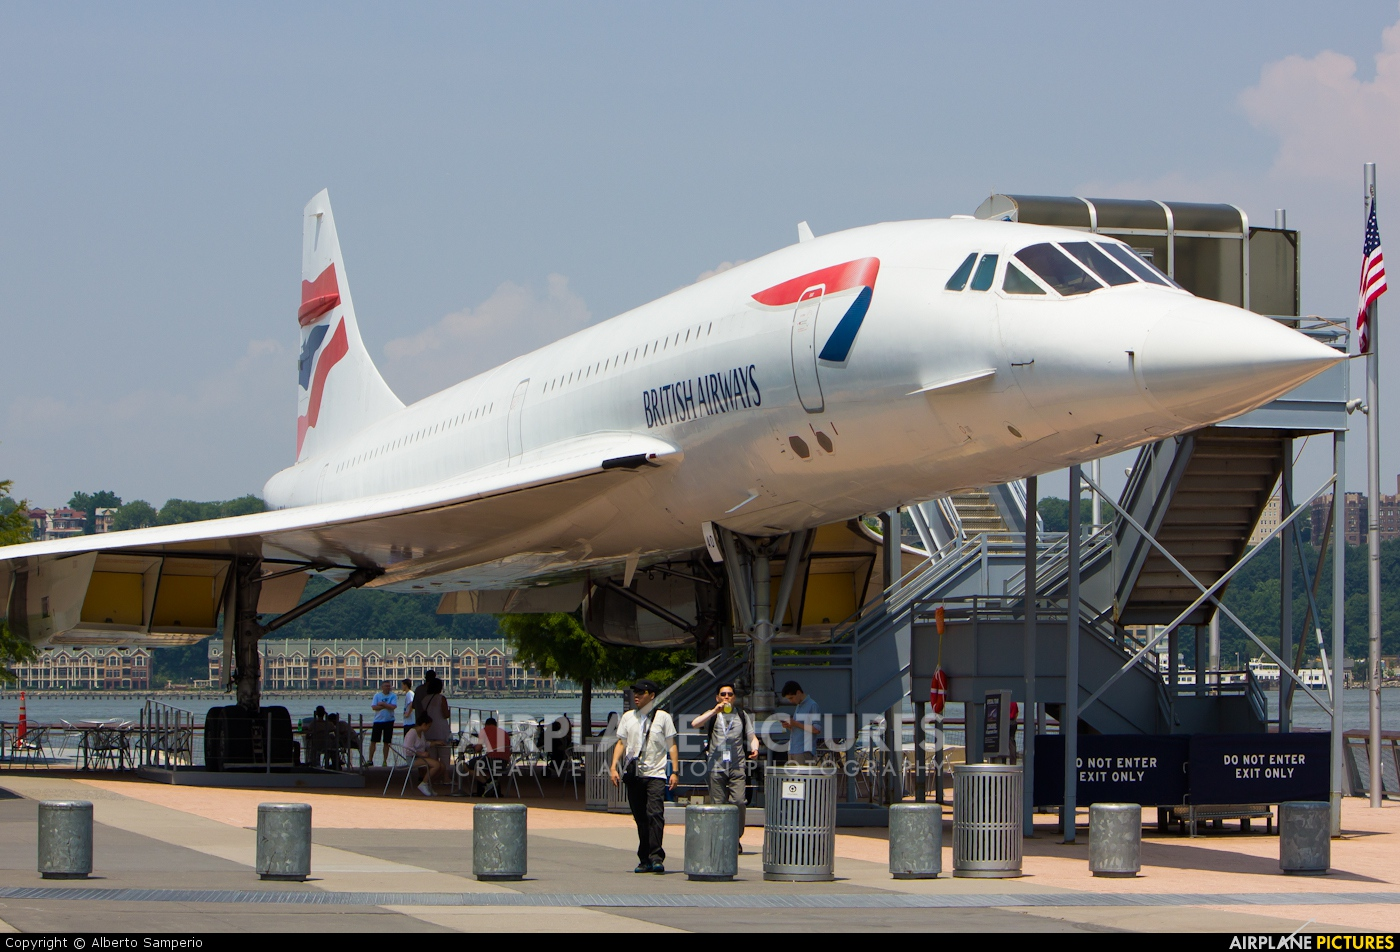 British Airways G-BOAD aircraft at New York - Intrepid Sea Air Museum